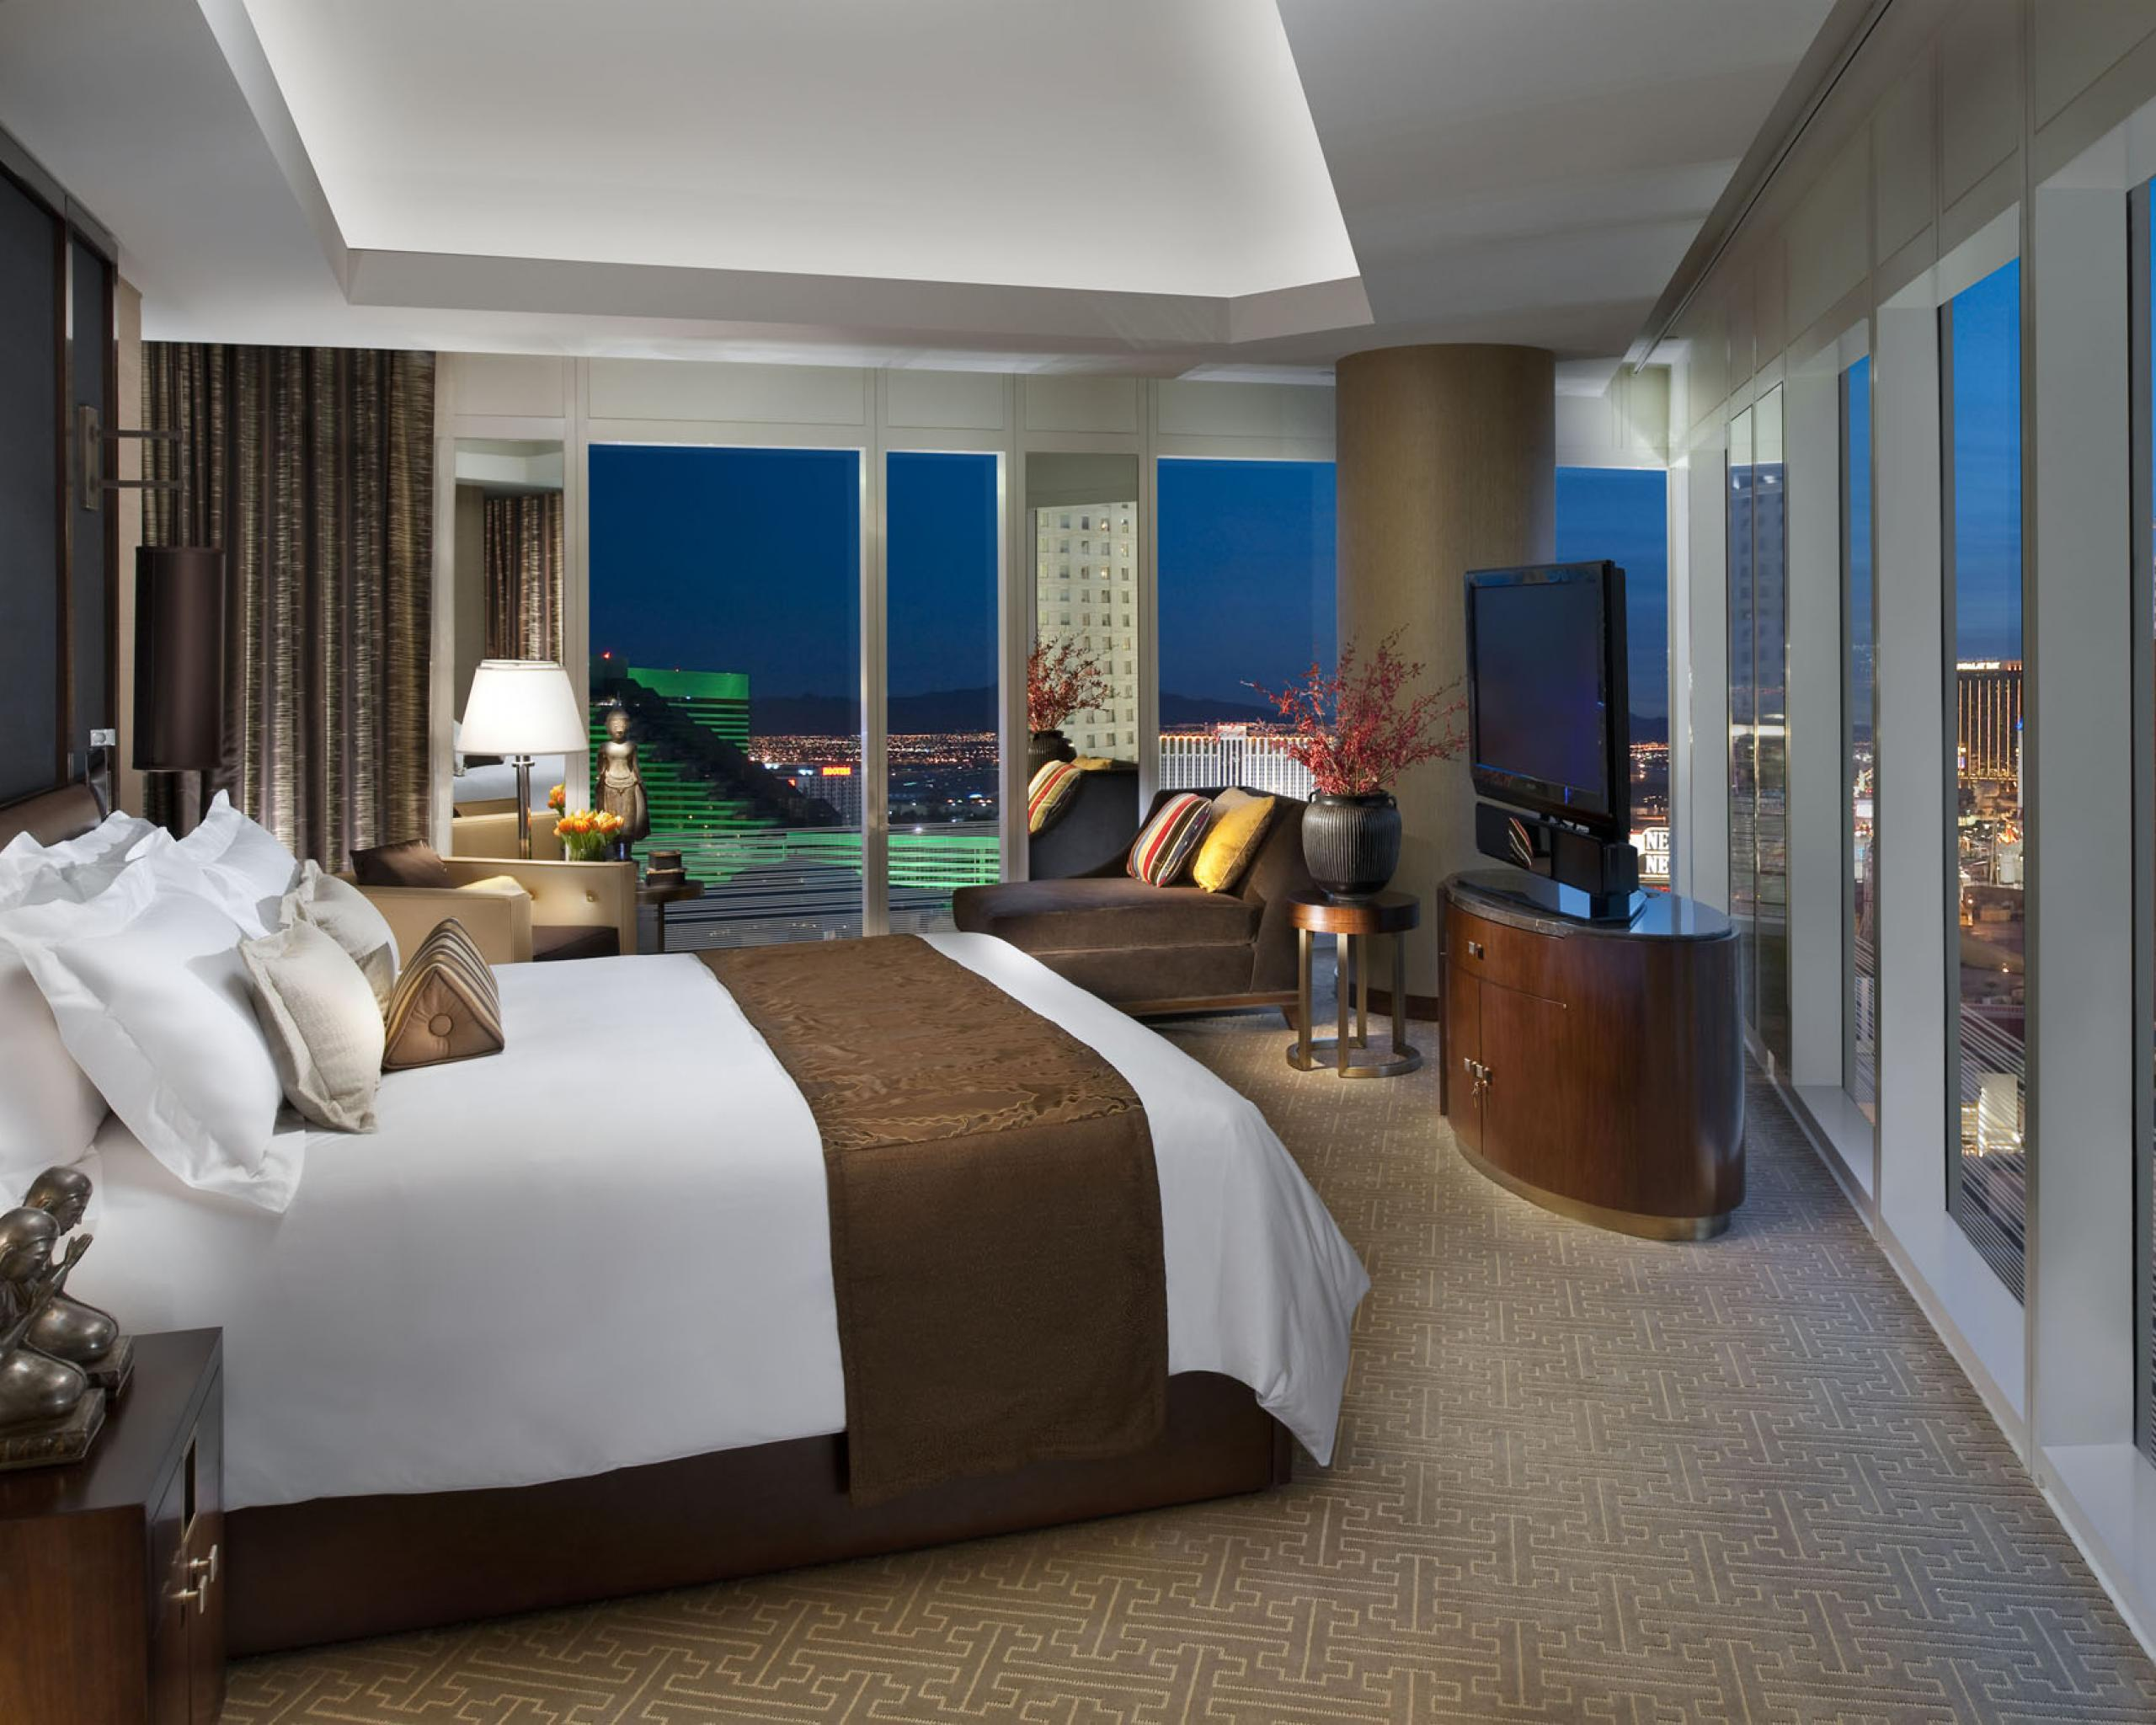 Awesome luxurious bedrooms ideas 6